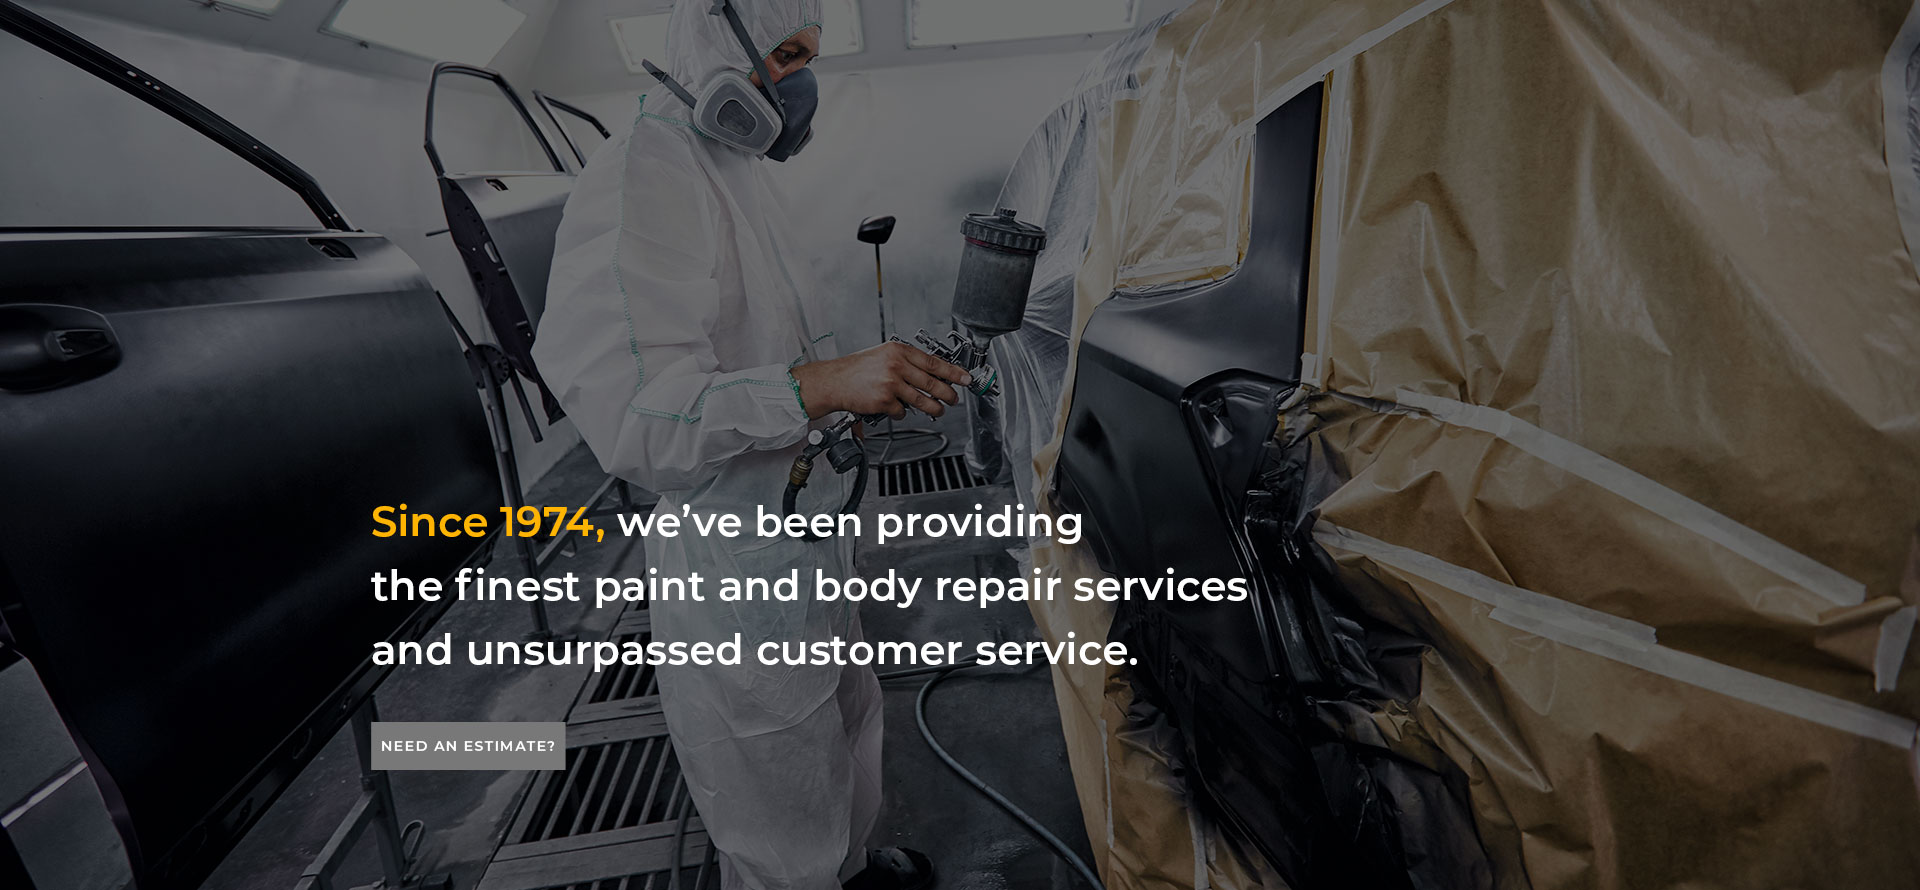 Since 1974 we've been providing the finest paint and body repair services and unsurpassed customer service